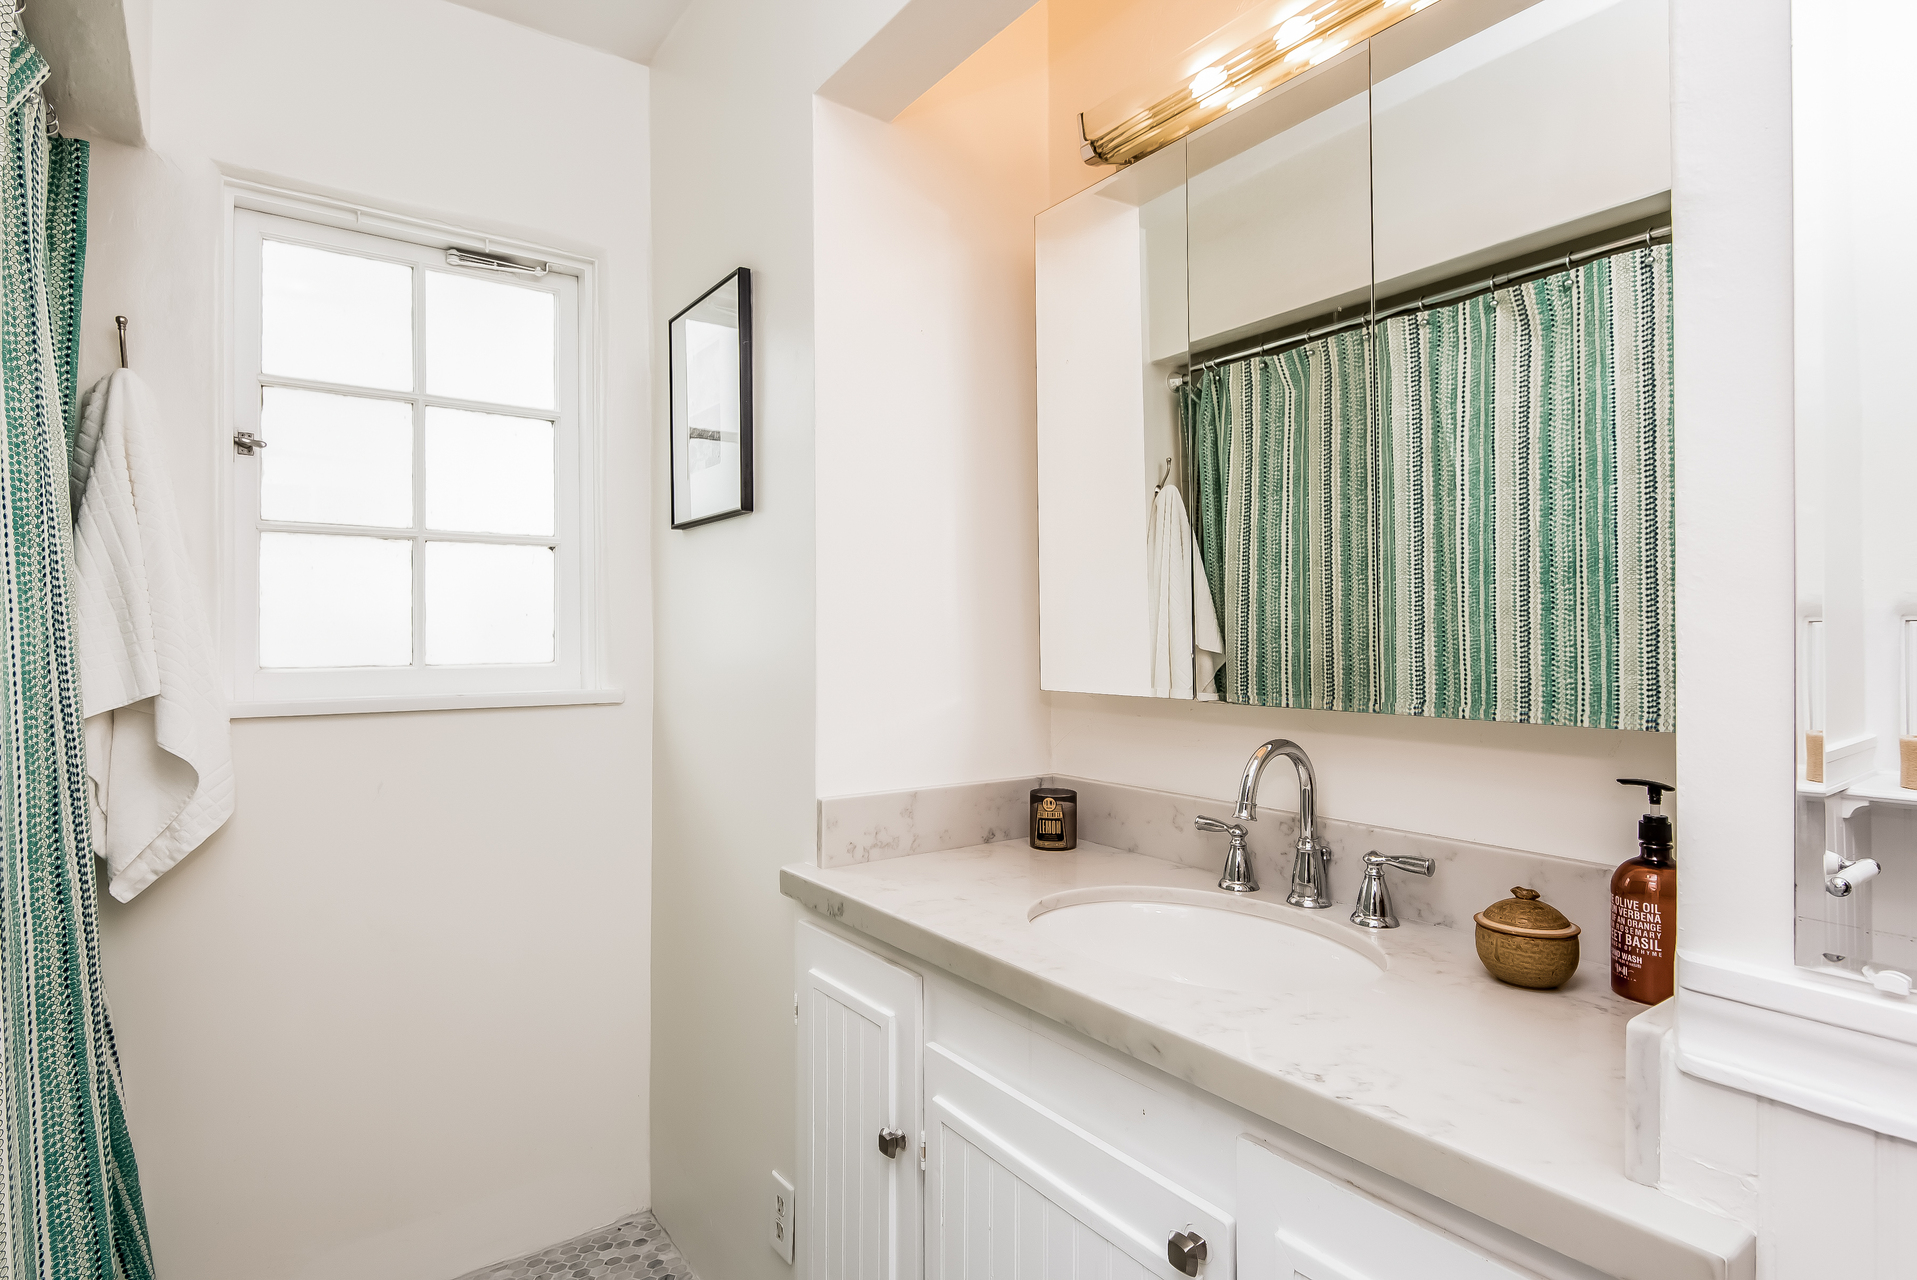 022-Bathroom-2860449-medium.jpg